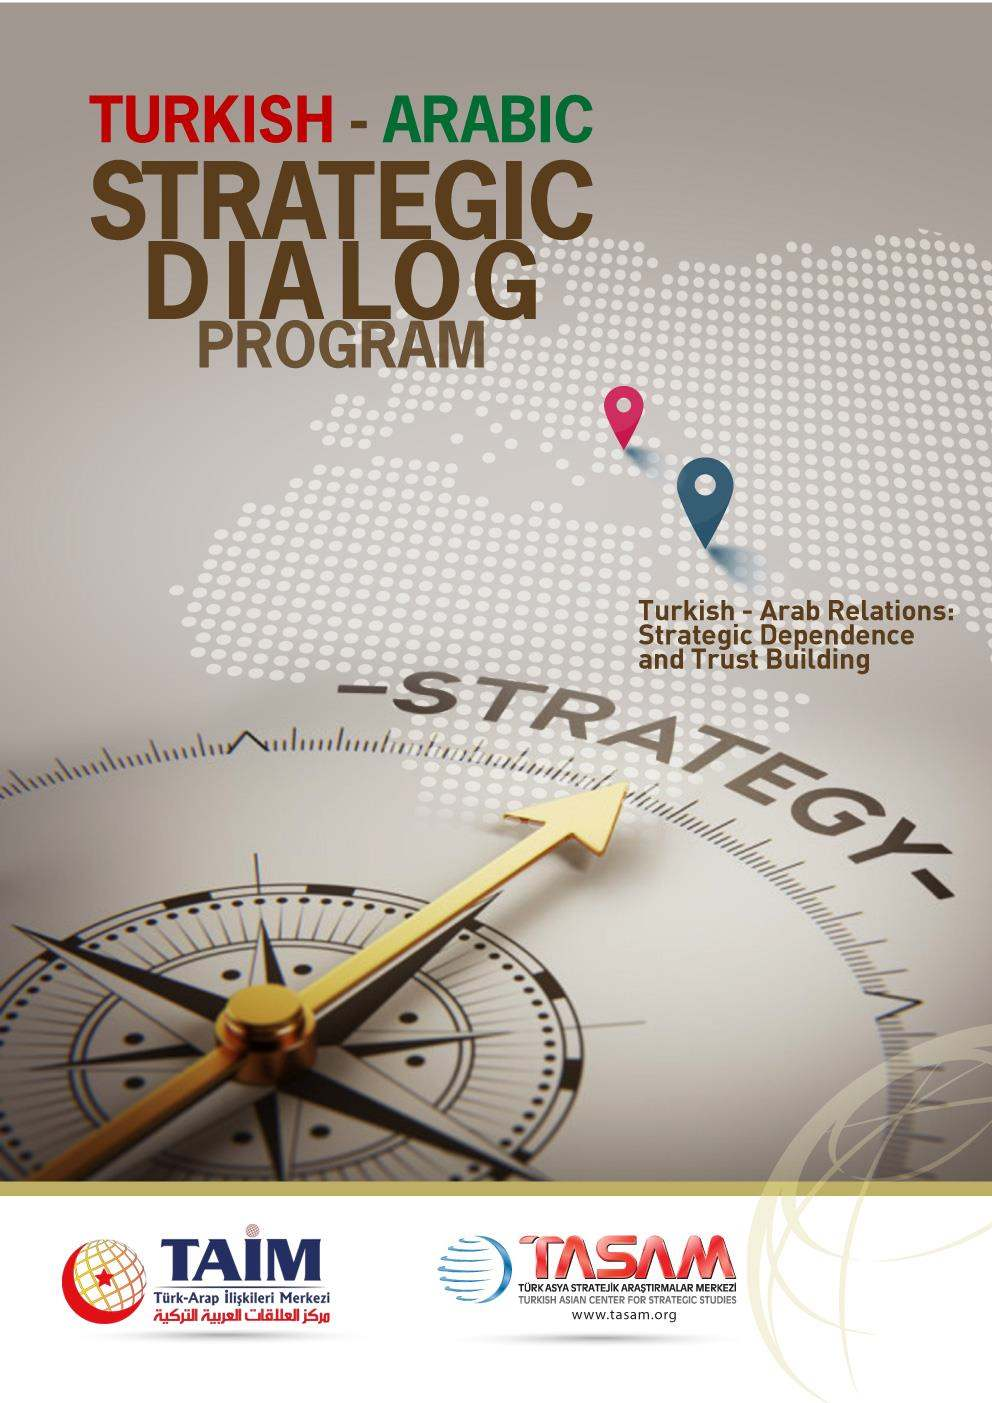 Turkish - Arabic Strategic Dialog Program